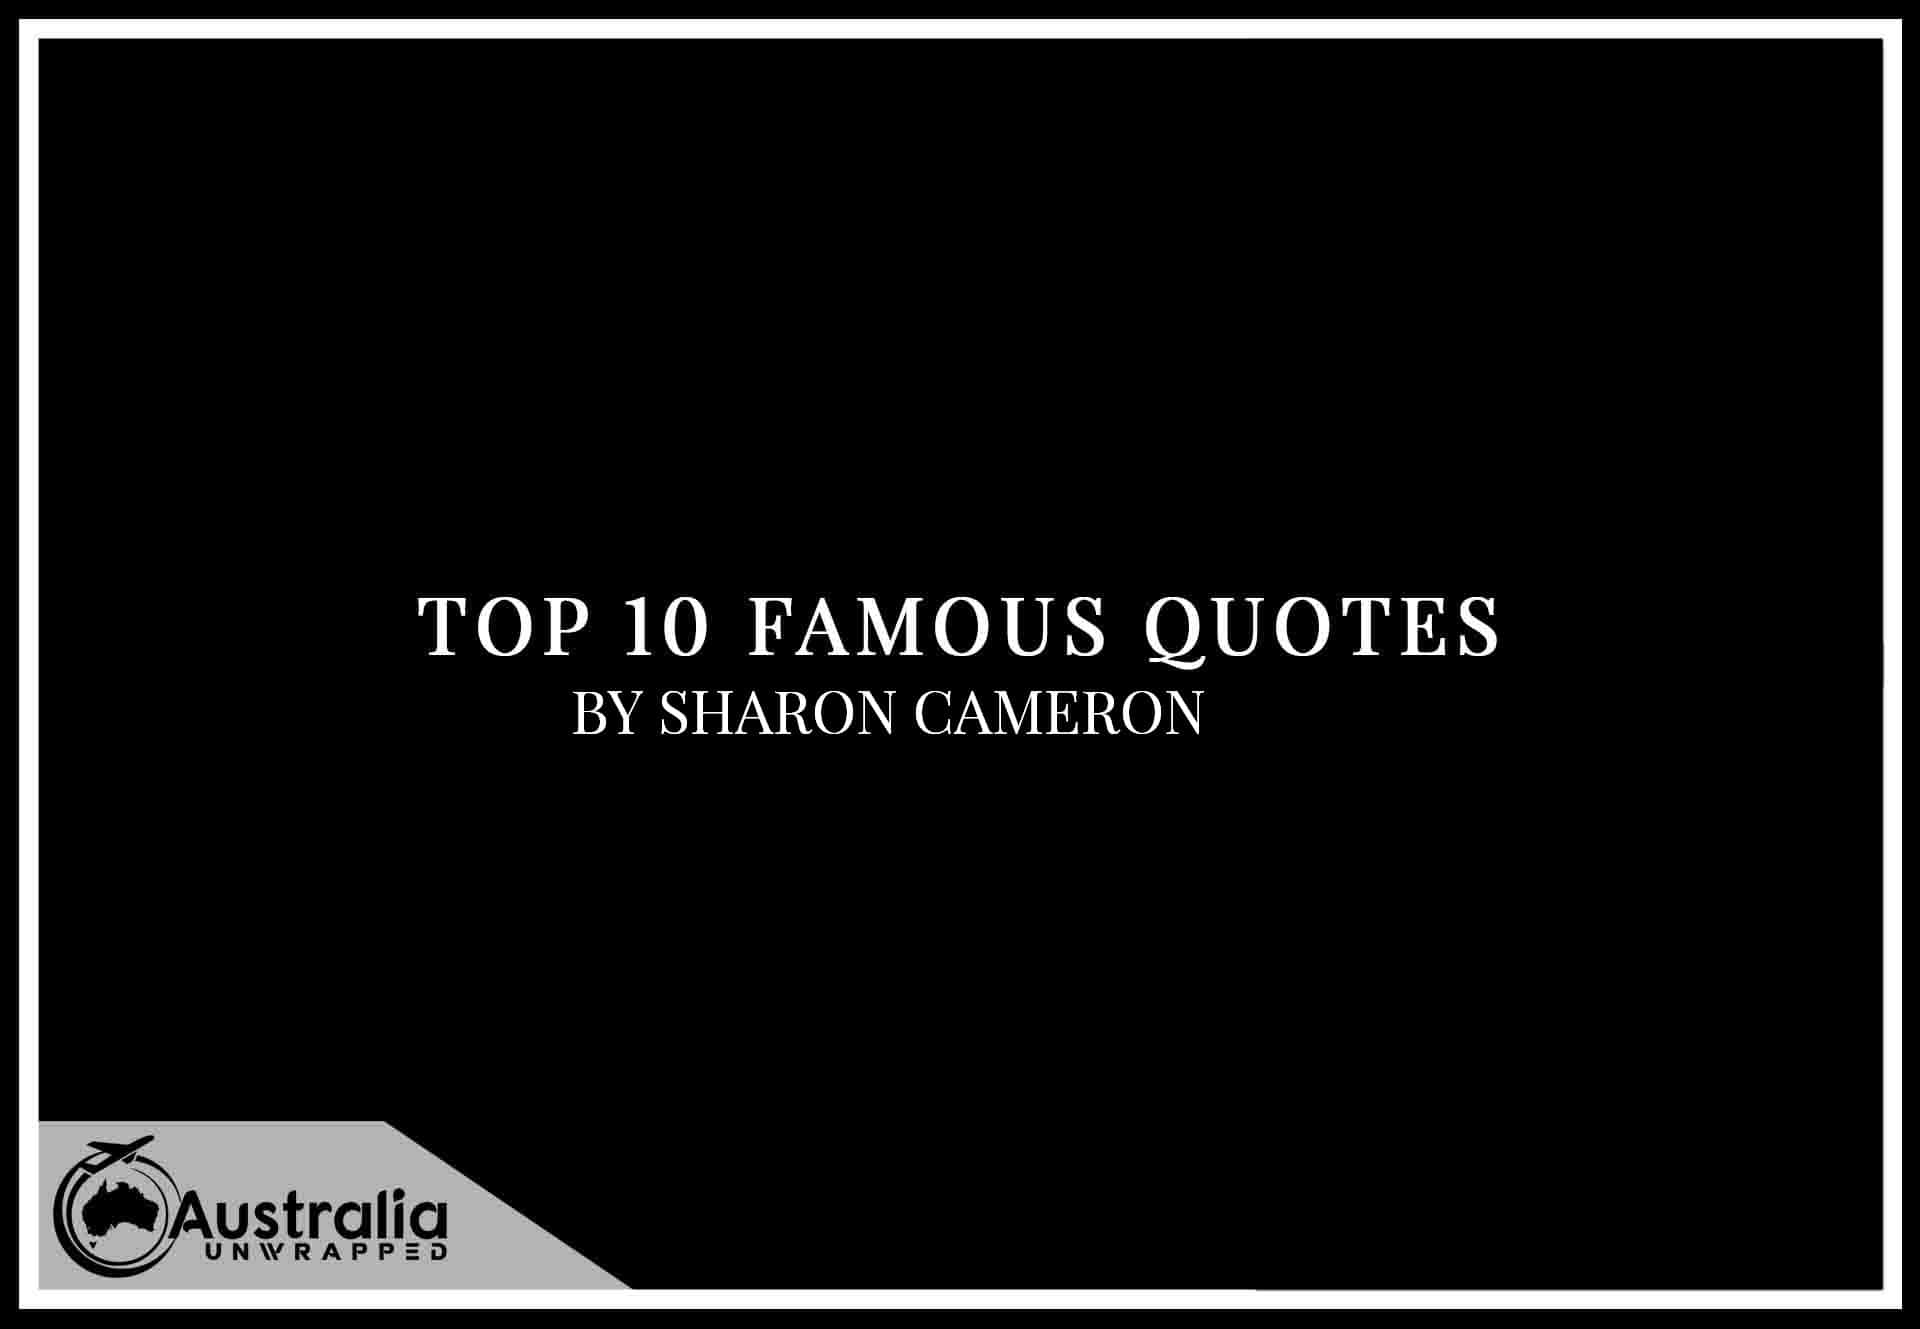 Top 10 Famous Quotes by Author Sharon Cameron